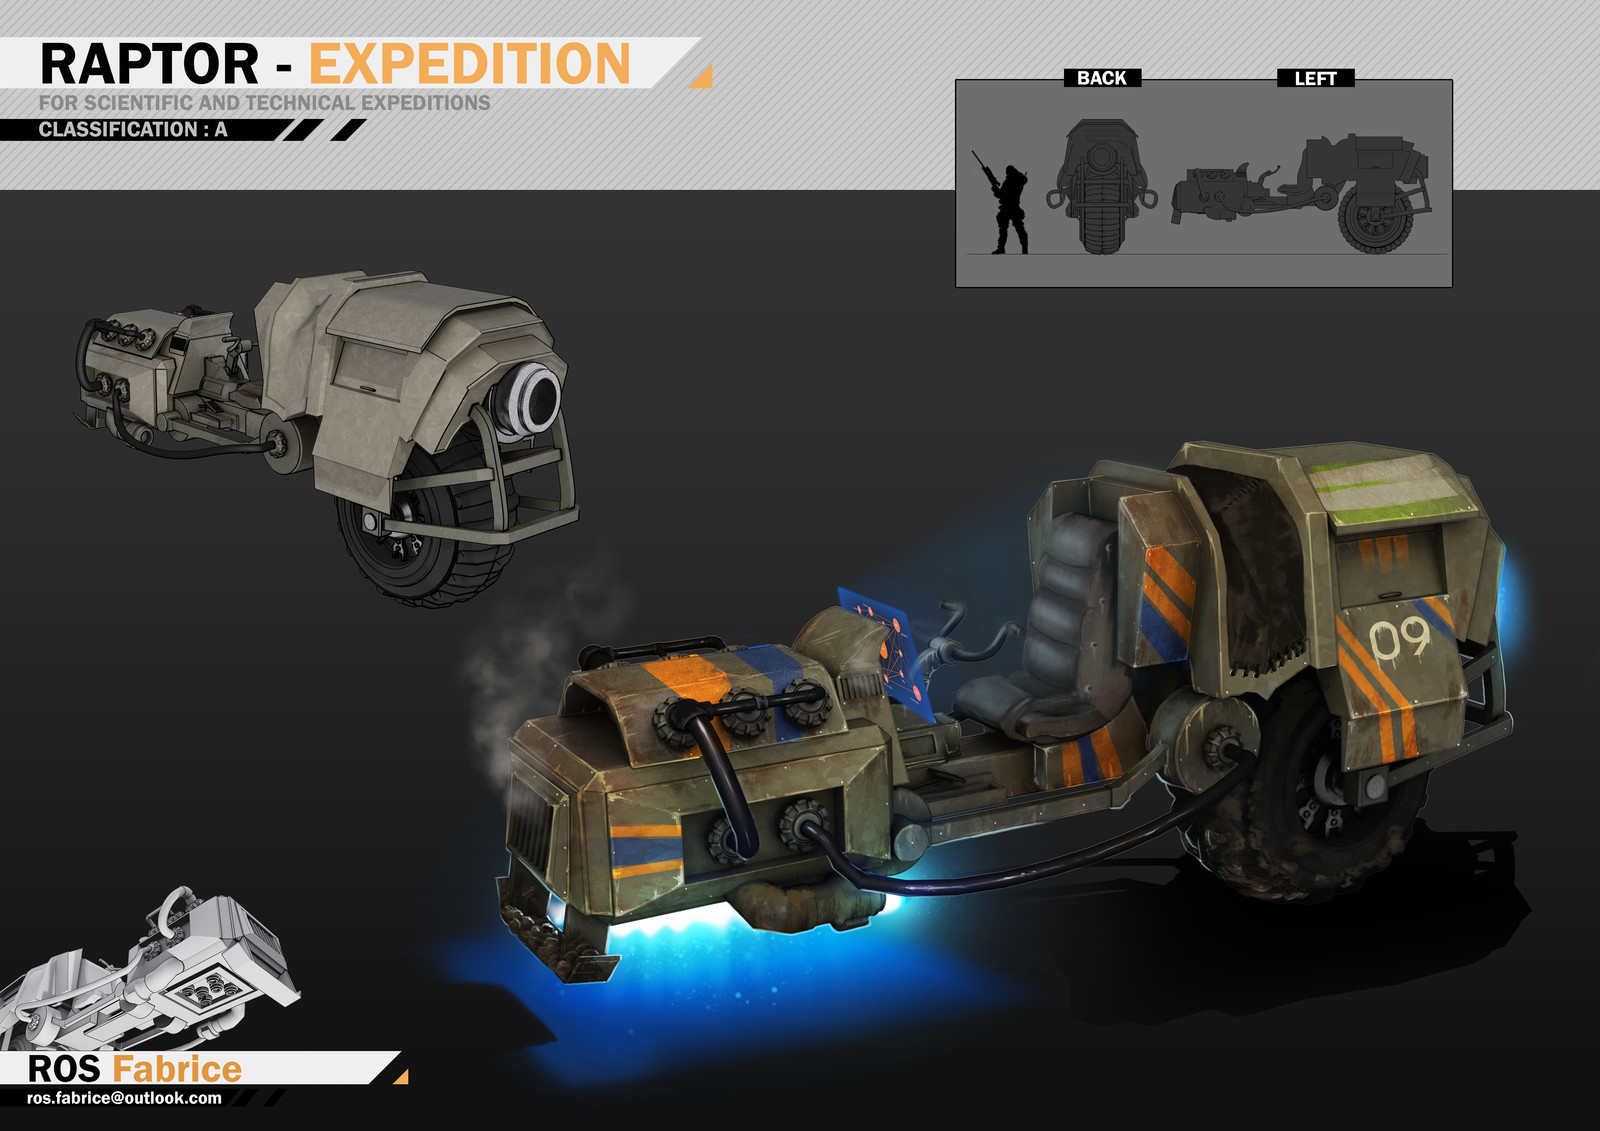 The RAPTOR - EXPEDITION